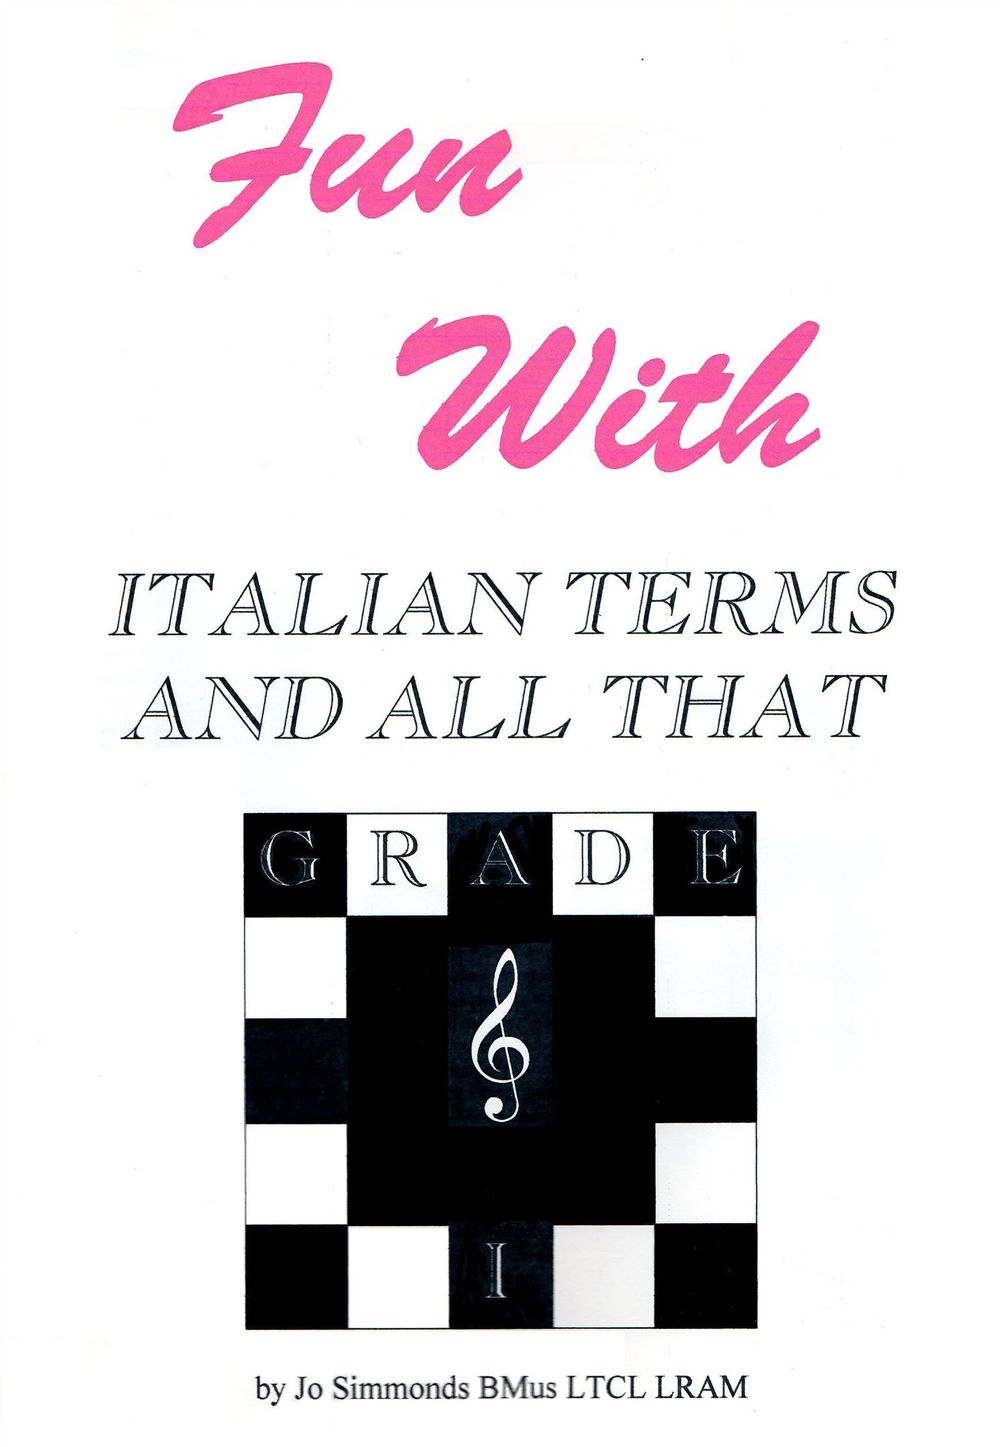 Music theory puzzles, grade 1, Italian terms puzzles and games